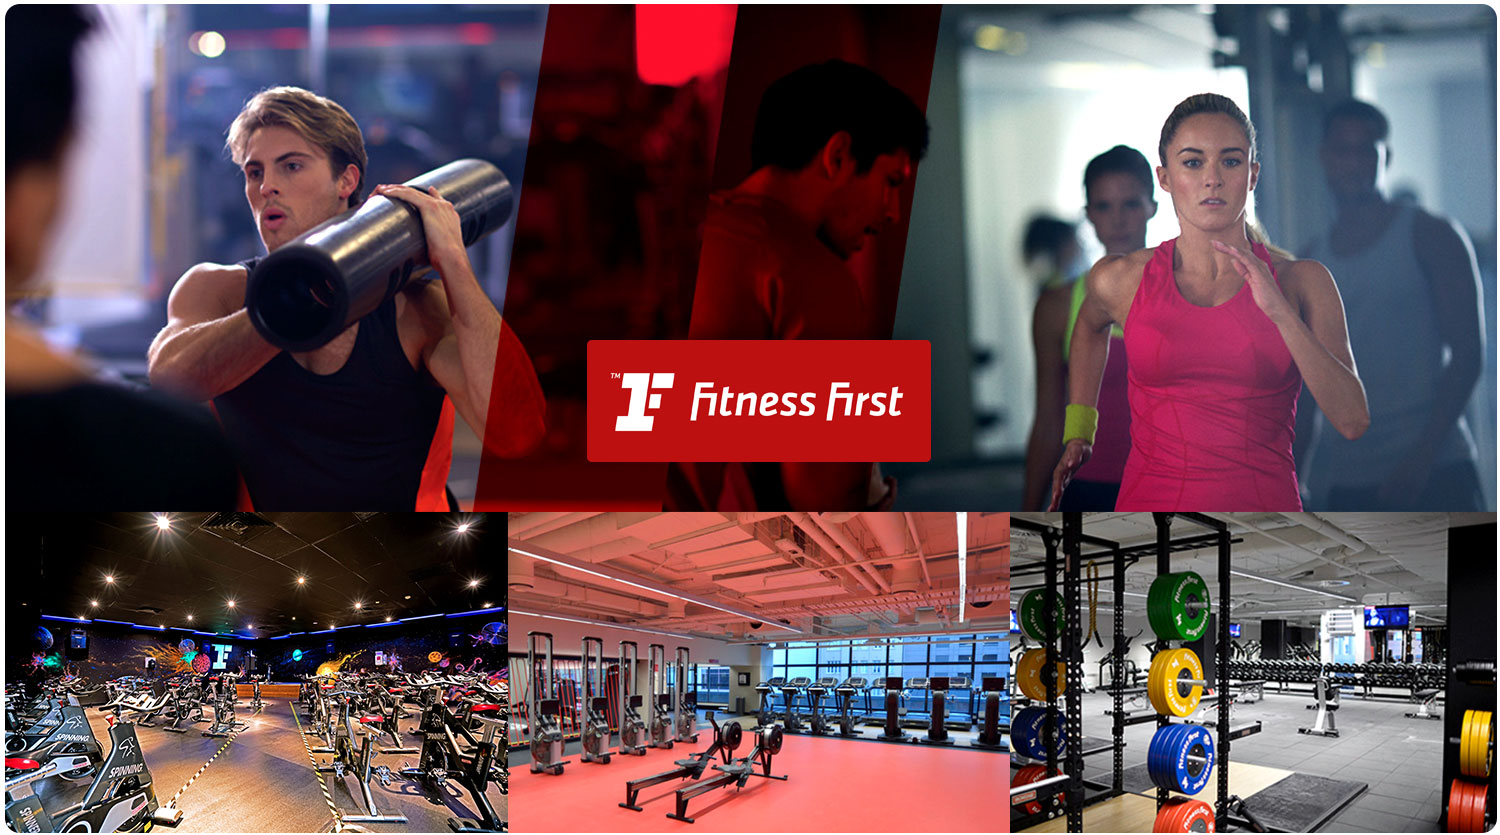 Start your Fitness Journey with Fitness First with only $9.95 for 1 week at Fitness First Castle Hill. Experience our first class gym and freestyle classes inc. Yoga, Pilates, Zumba, Les Mills and more. Take the first step with Fitness First Castle Hill.